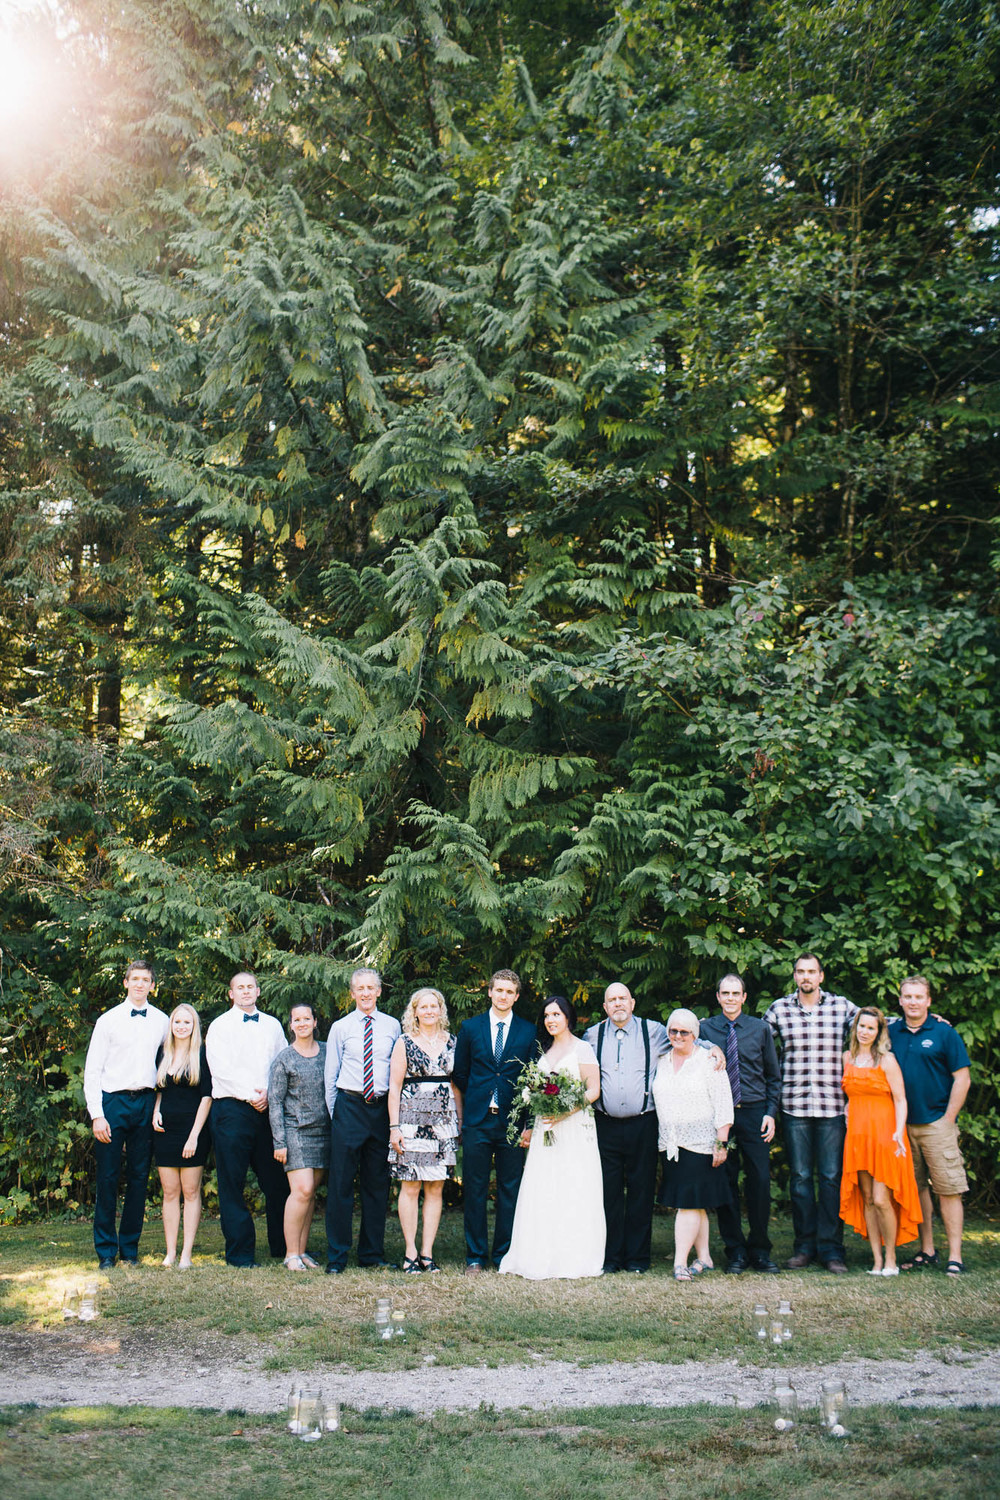 20140920_wedding_best_vancouver_rustic_photographer_photography_squamish__165.jpg